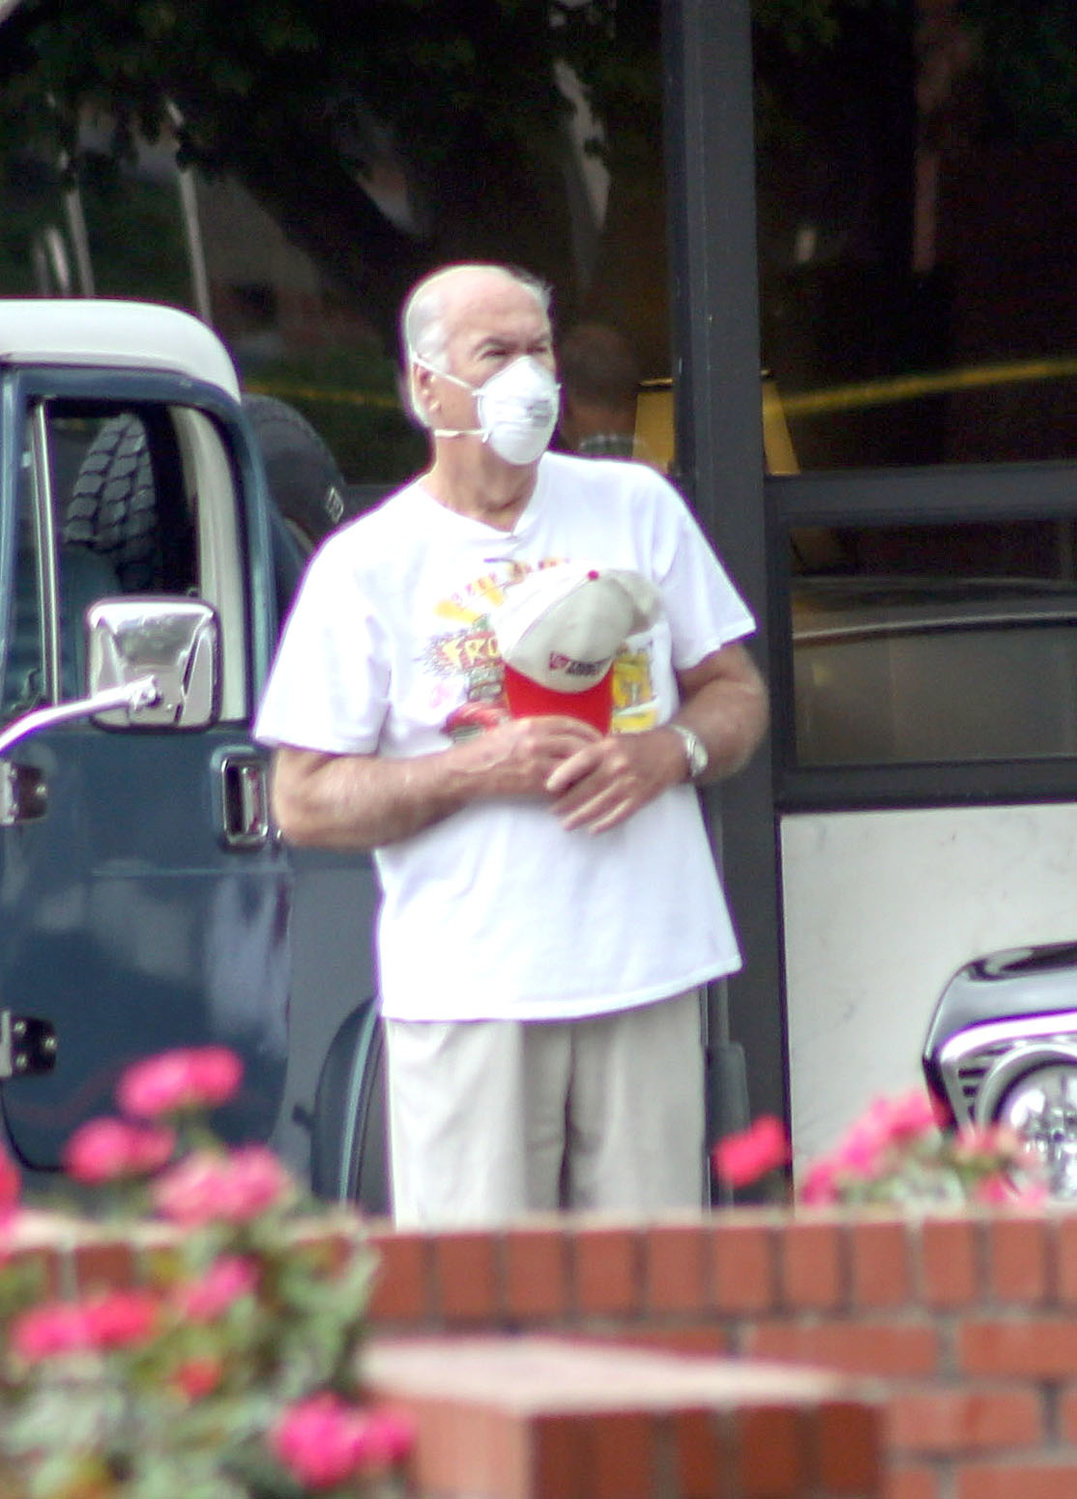 SOME ATTENDEES, such as this gentleman pausing for the pledge or allegiance, wore masks to the first Cruise-In of the season amidst the ongoing pandemic.